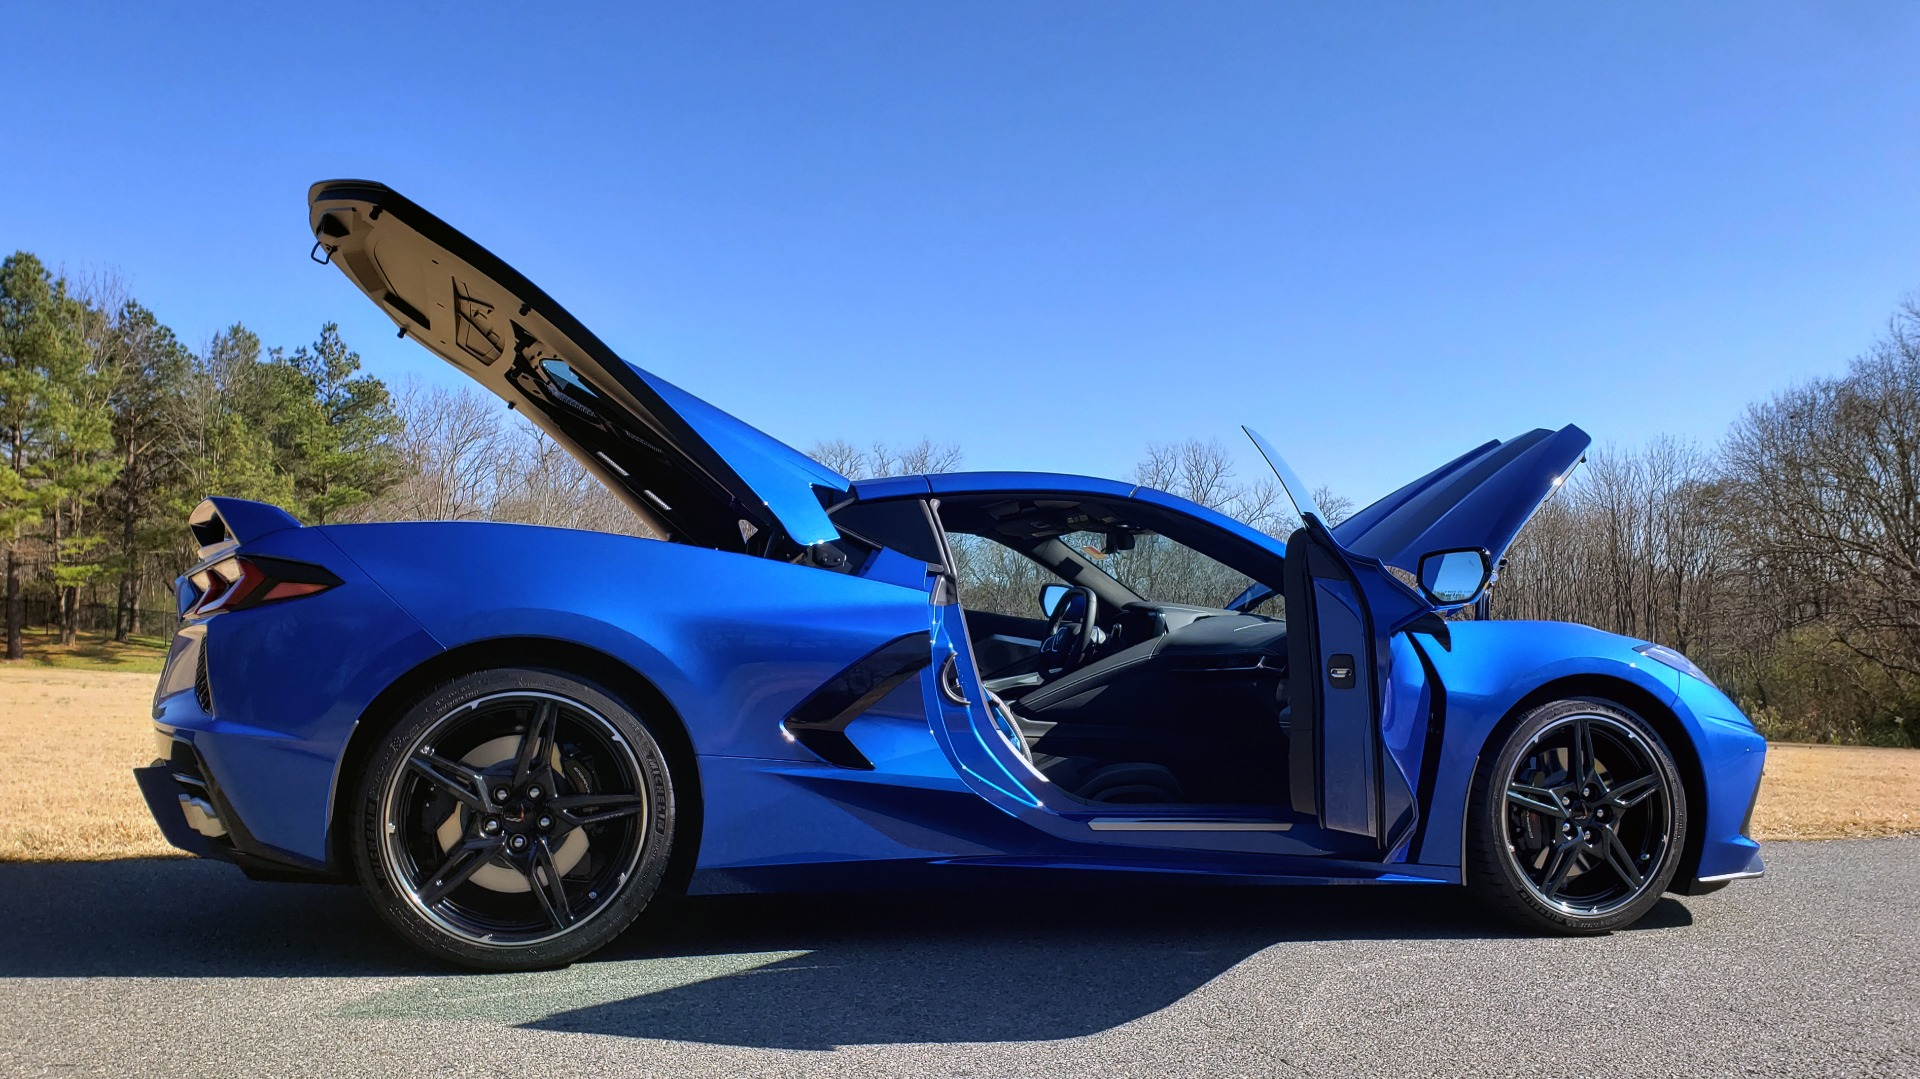 Used 2020 Chevrolet C8 CORVETTE STINGRAY 2LT COUPE / NAV / HUD / BOSE / GT2 SEATS / FRONT LIFT / REARVIEW for sale Sold at Formula Imports in Charlotte NC 28227 39